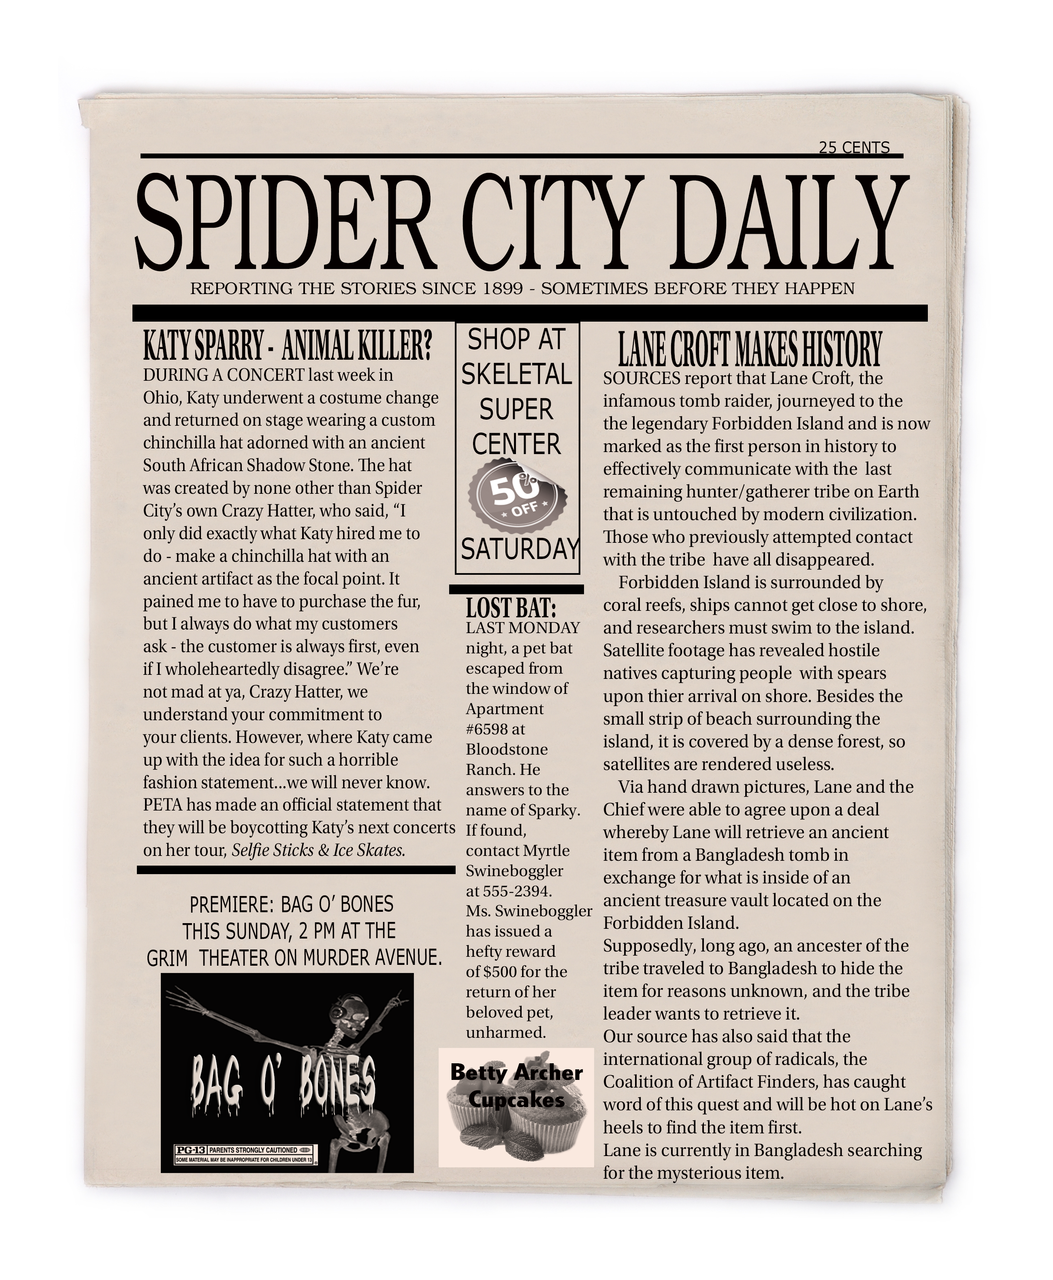 Spider City Daily murder mystery news article